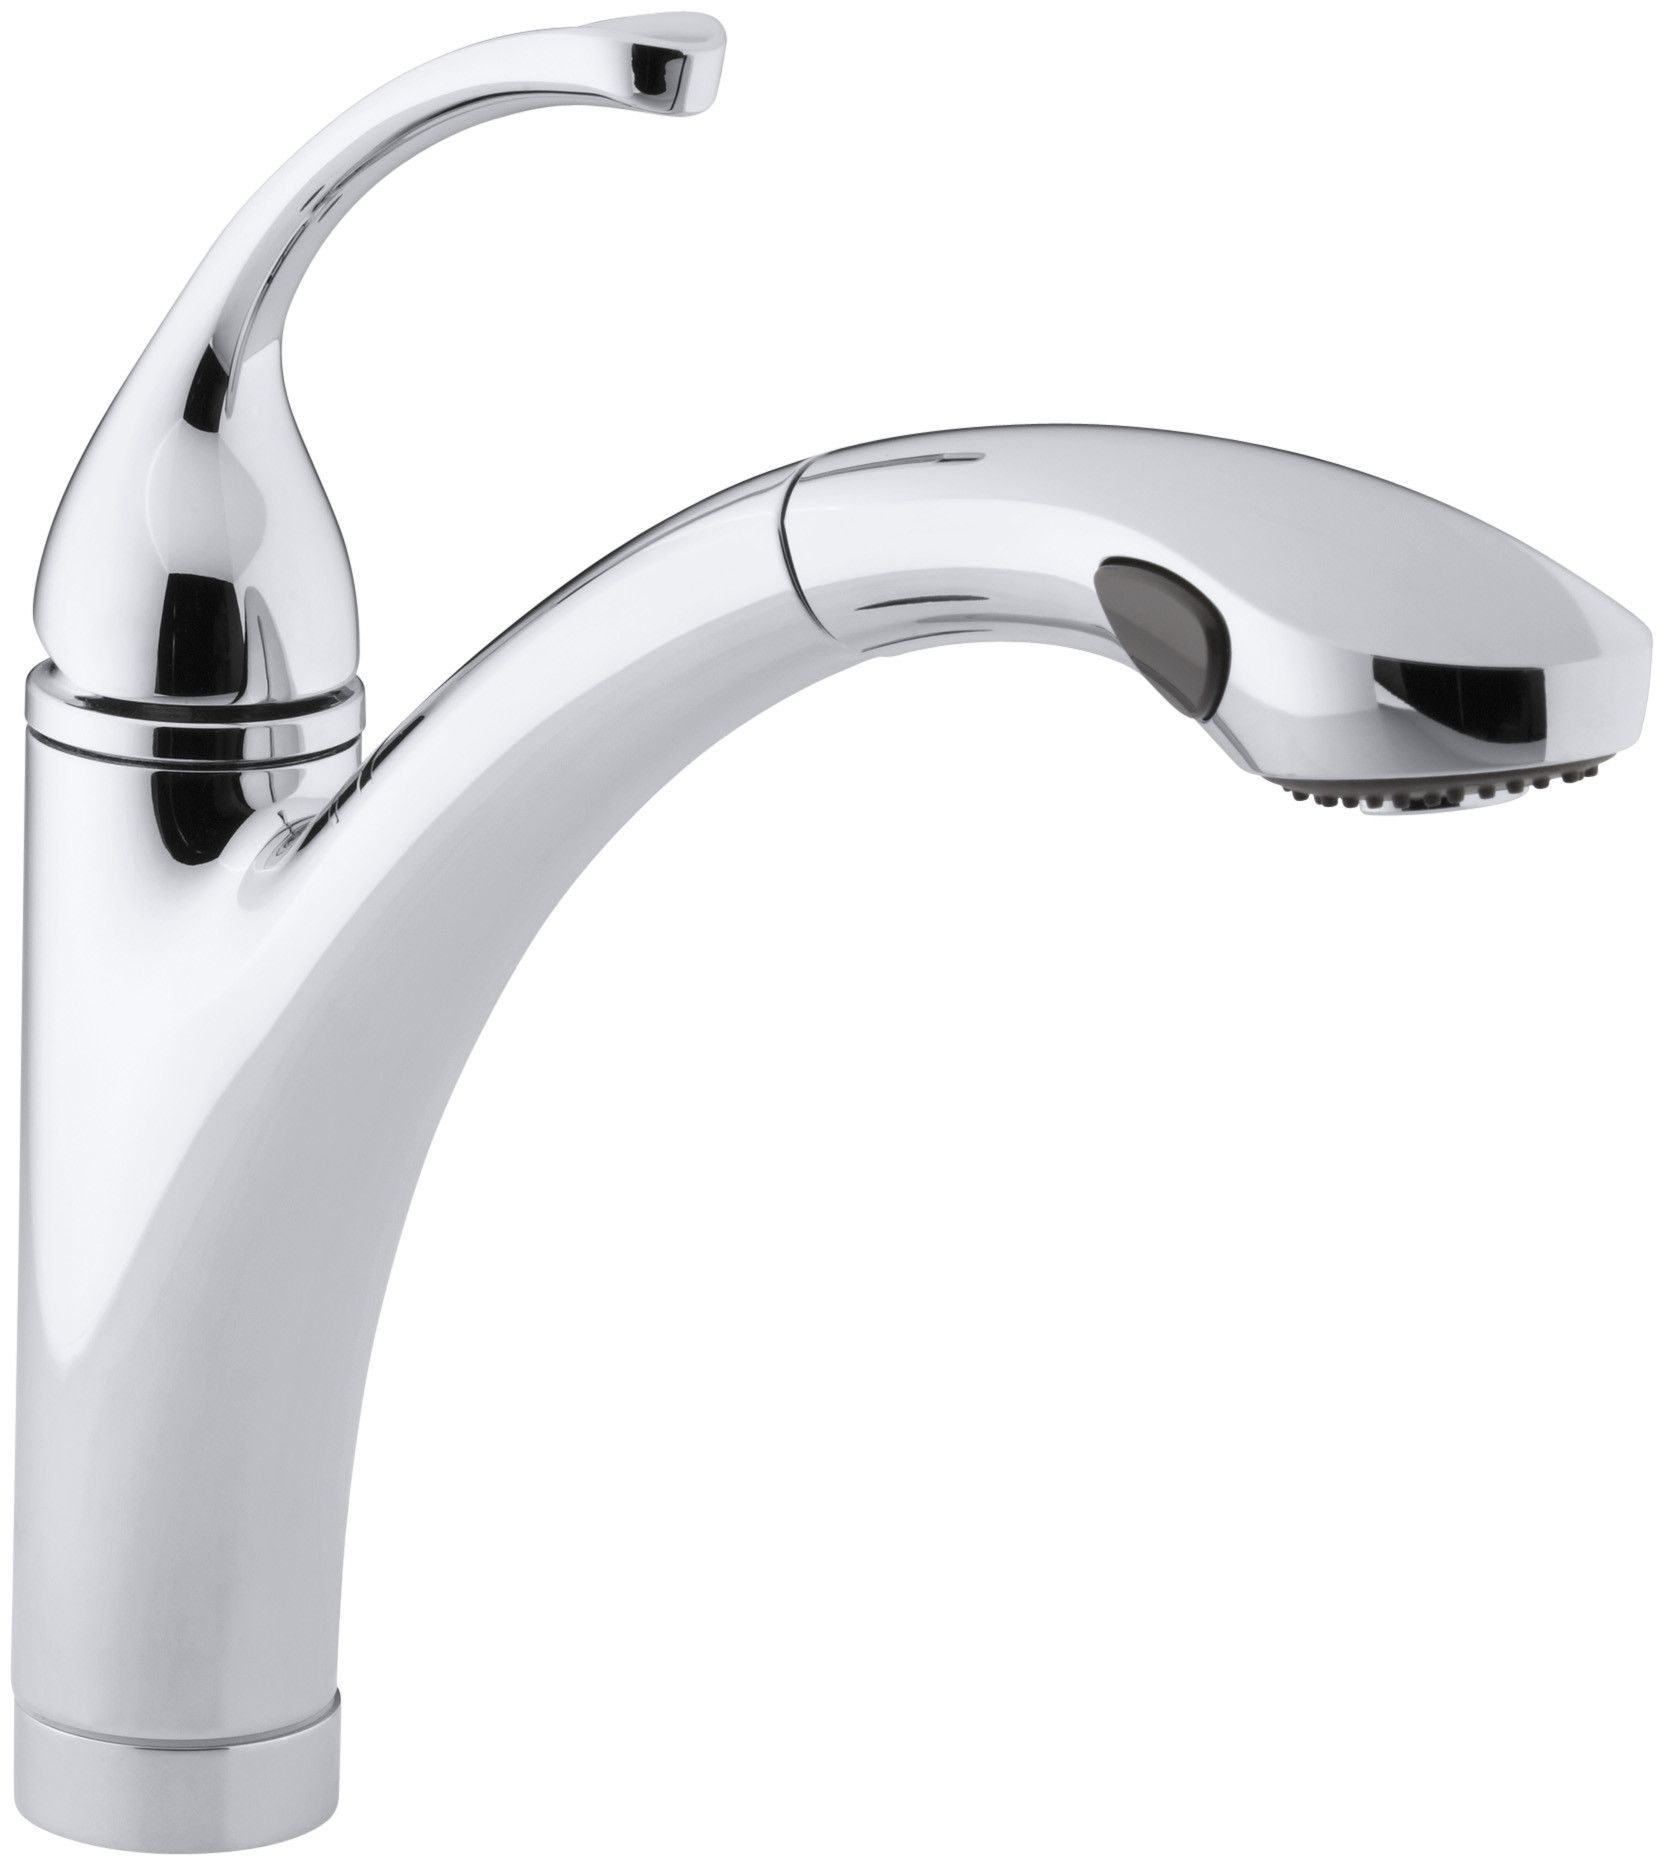 "Forté Single-Hole or 3-Hole Kitchen Sink Faucet with 10-1/8"" Pullout Spray Spout"